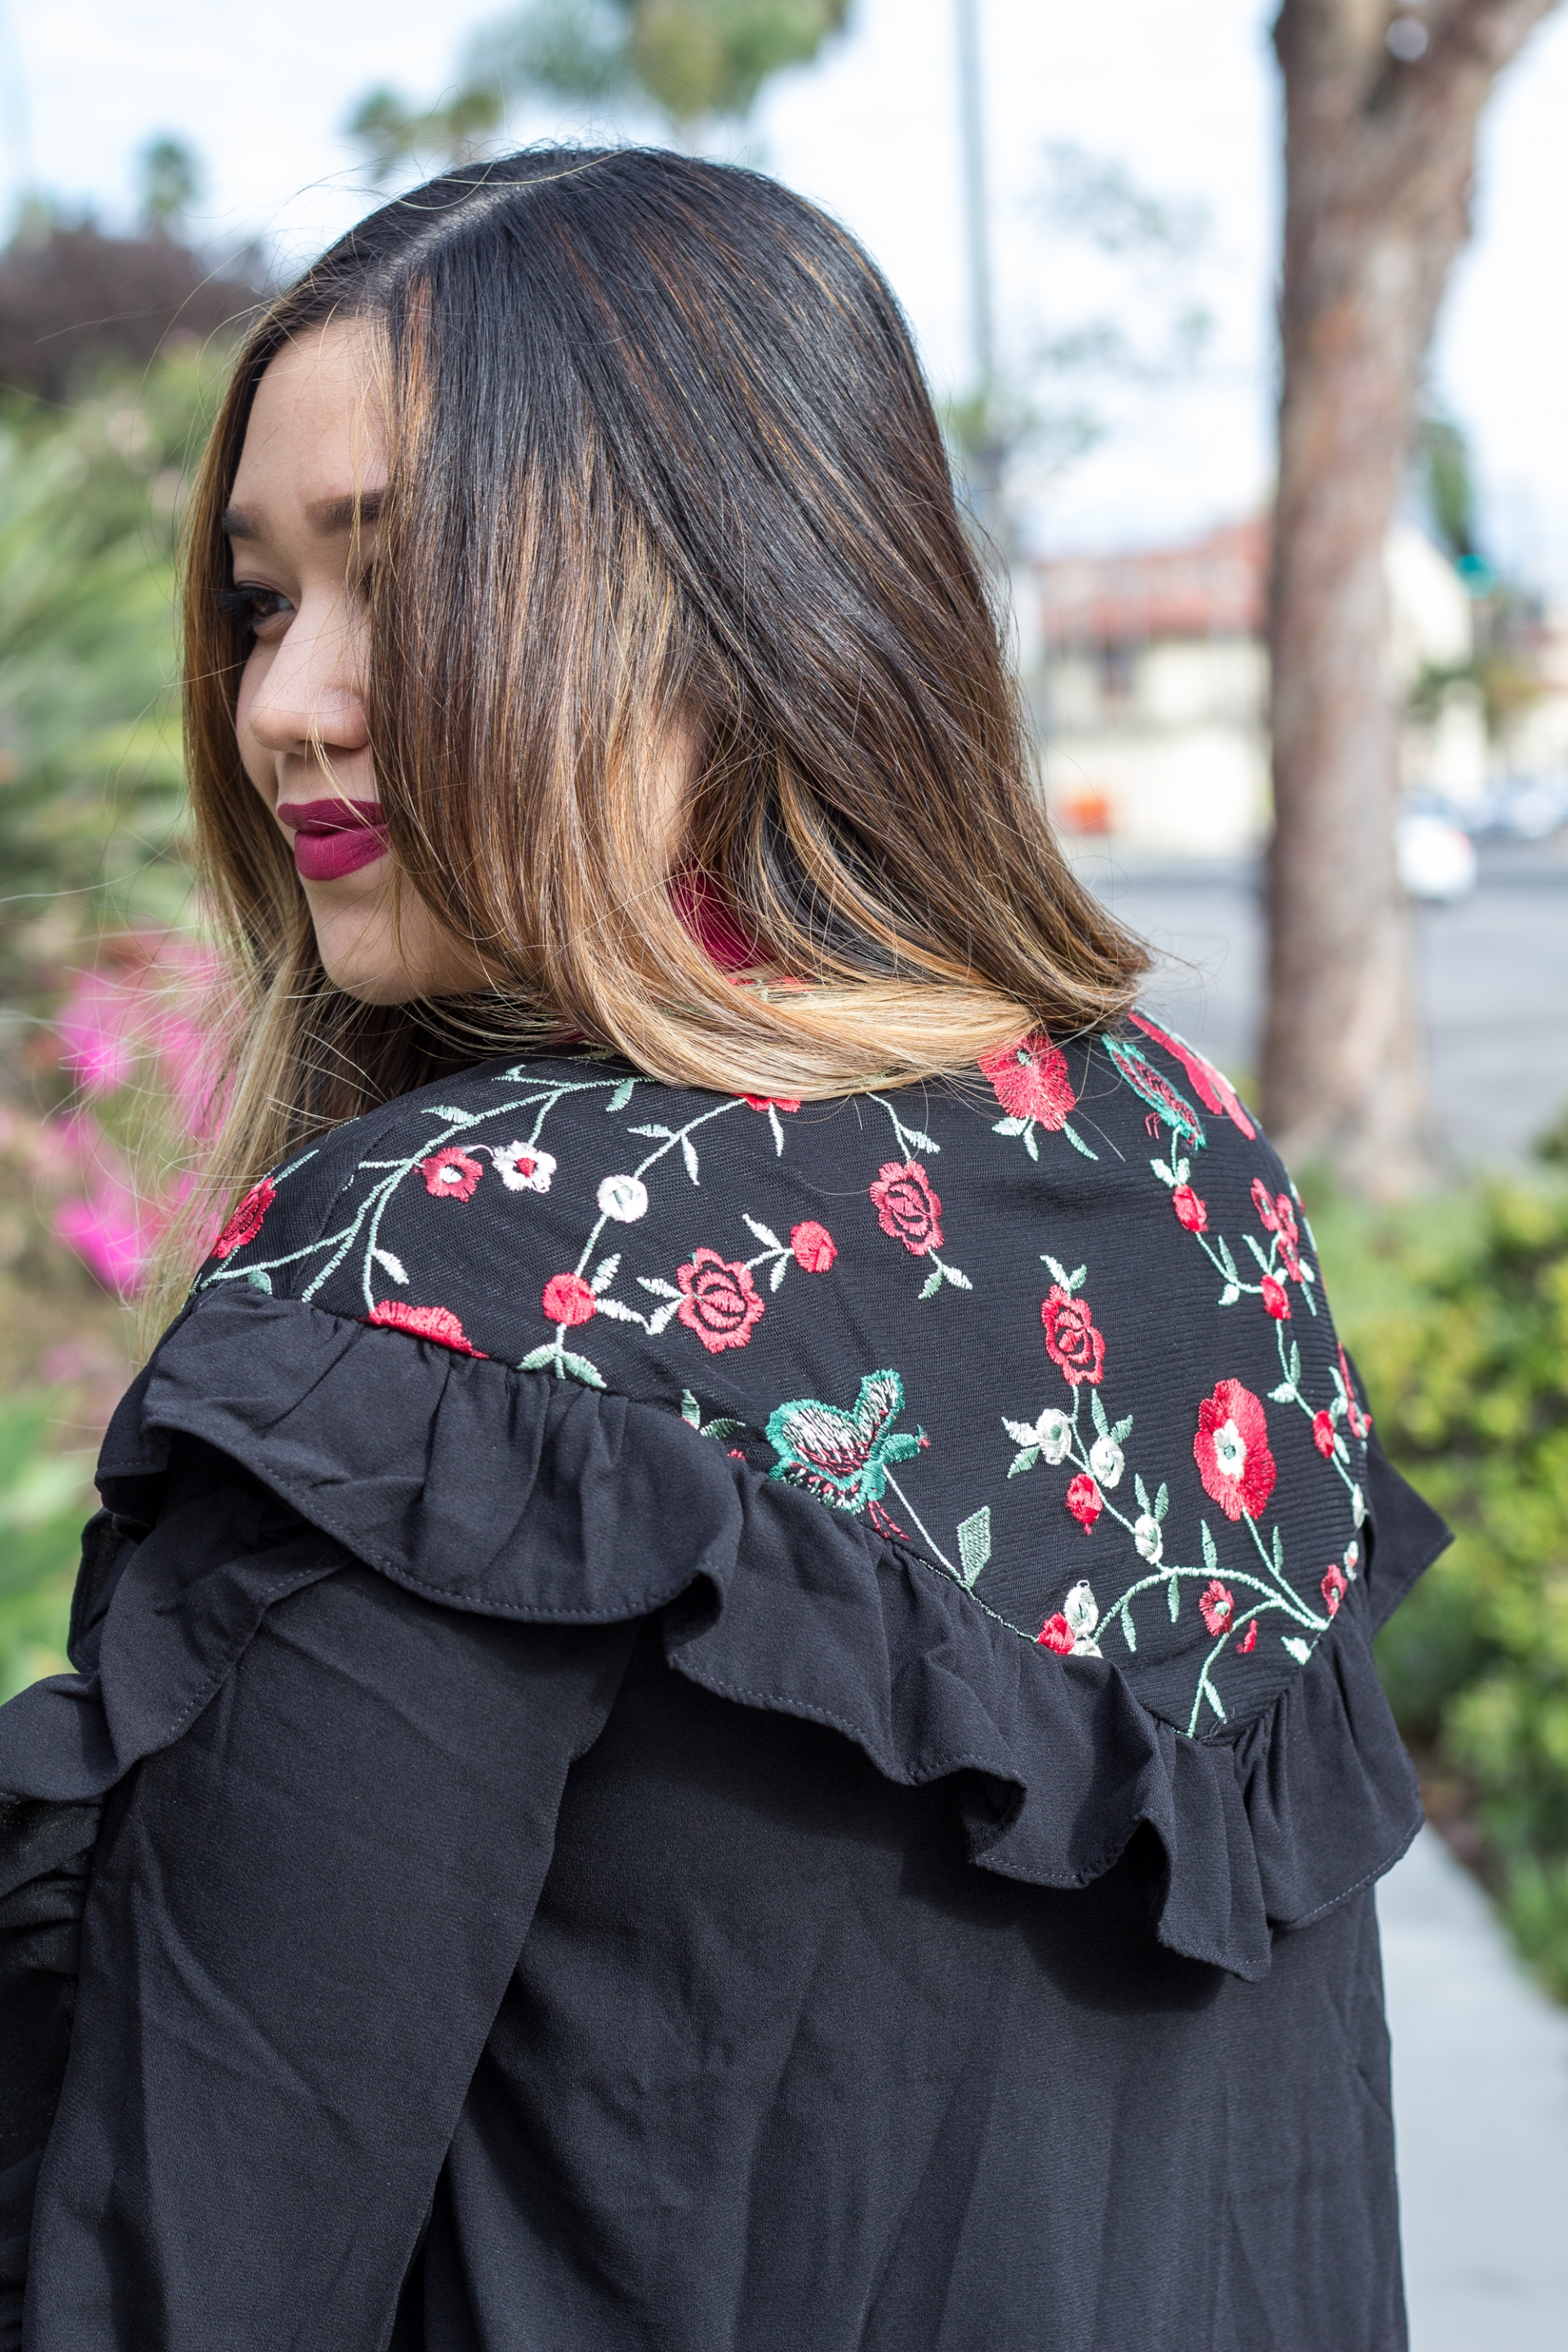 Shein-Romwe-Frill-Trim-Embroidered-Yoke-And-Cuff-Bomber-Jacket-Ruffle-Floral